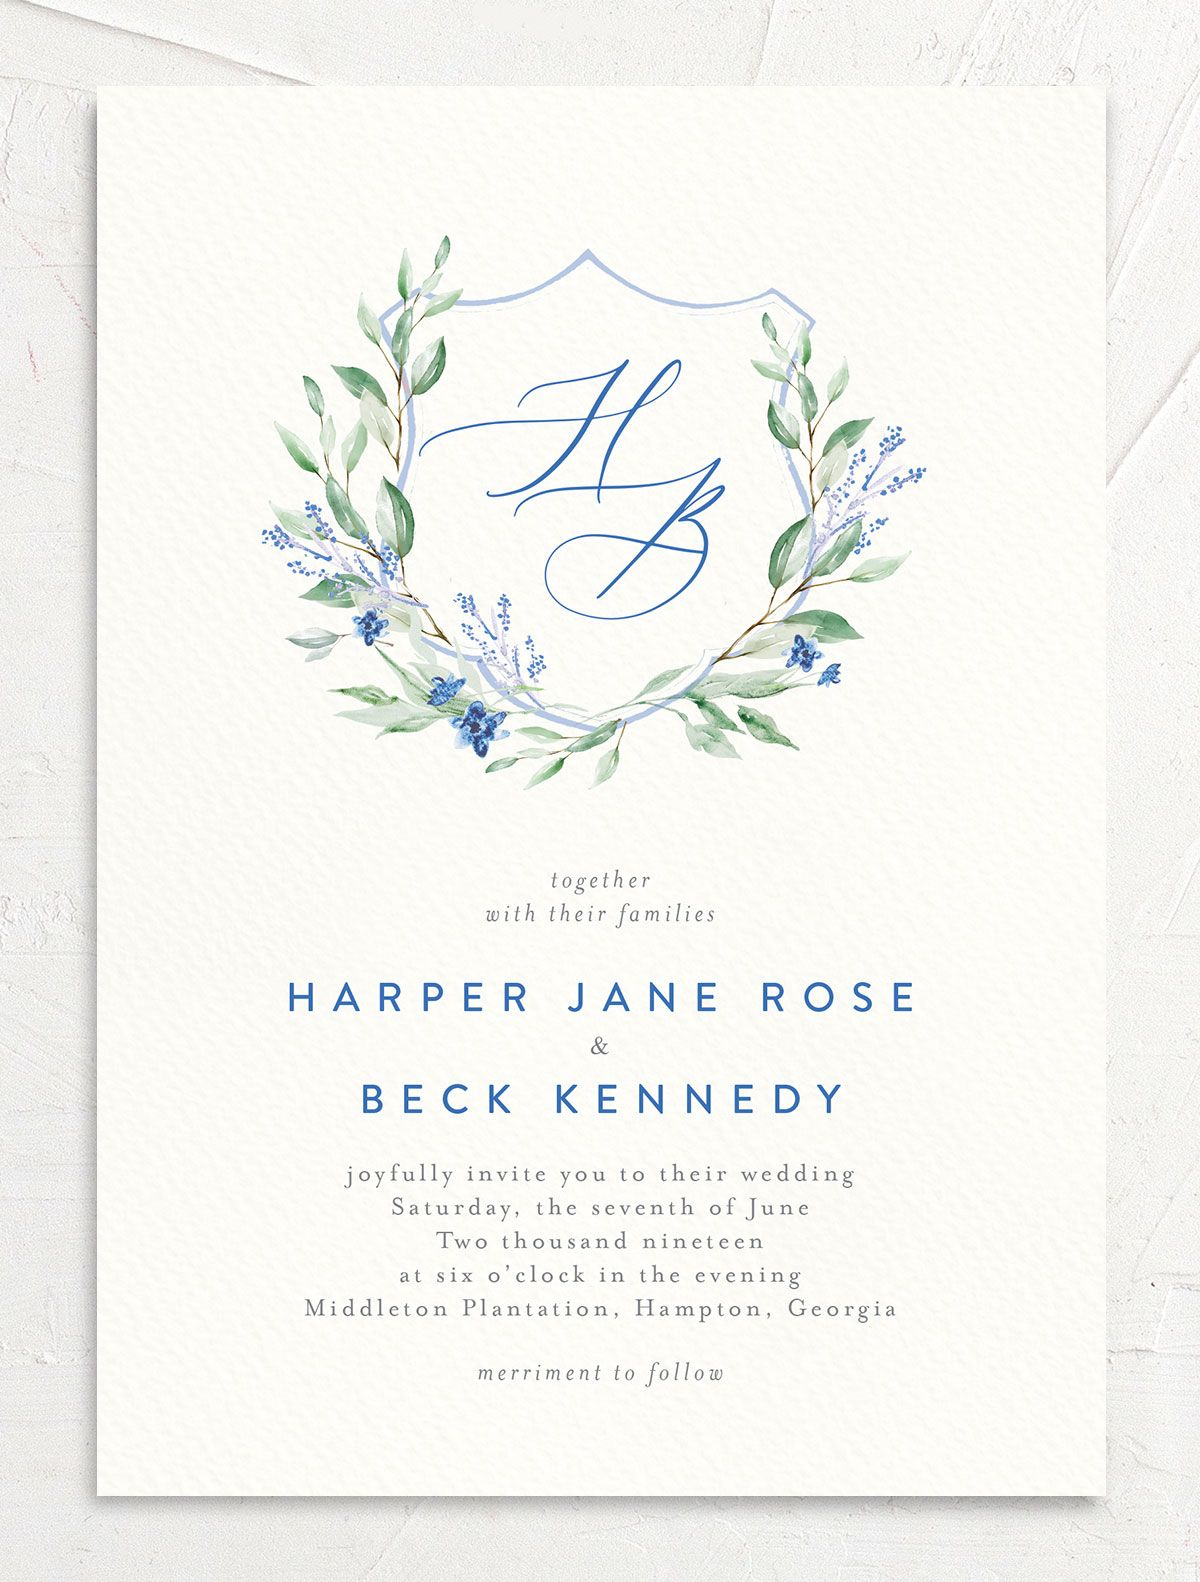 watercolor crest wedding invites in blue